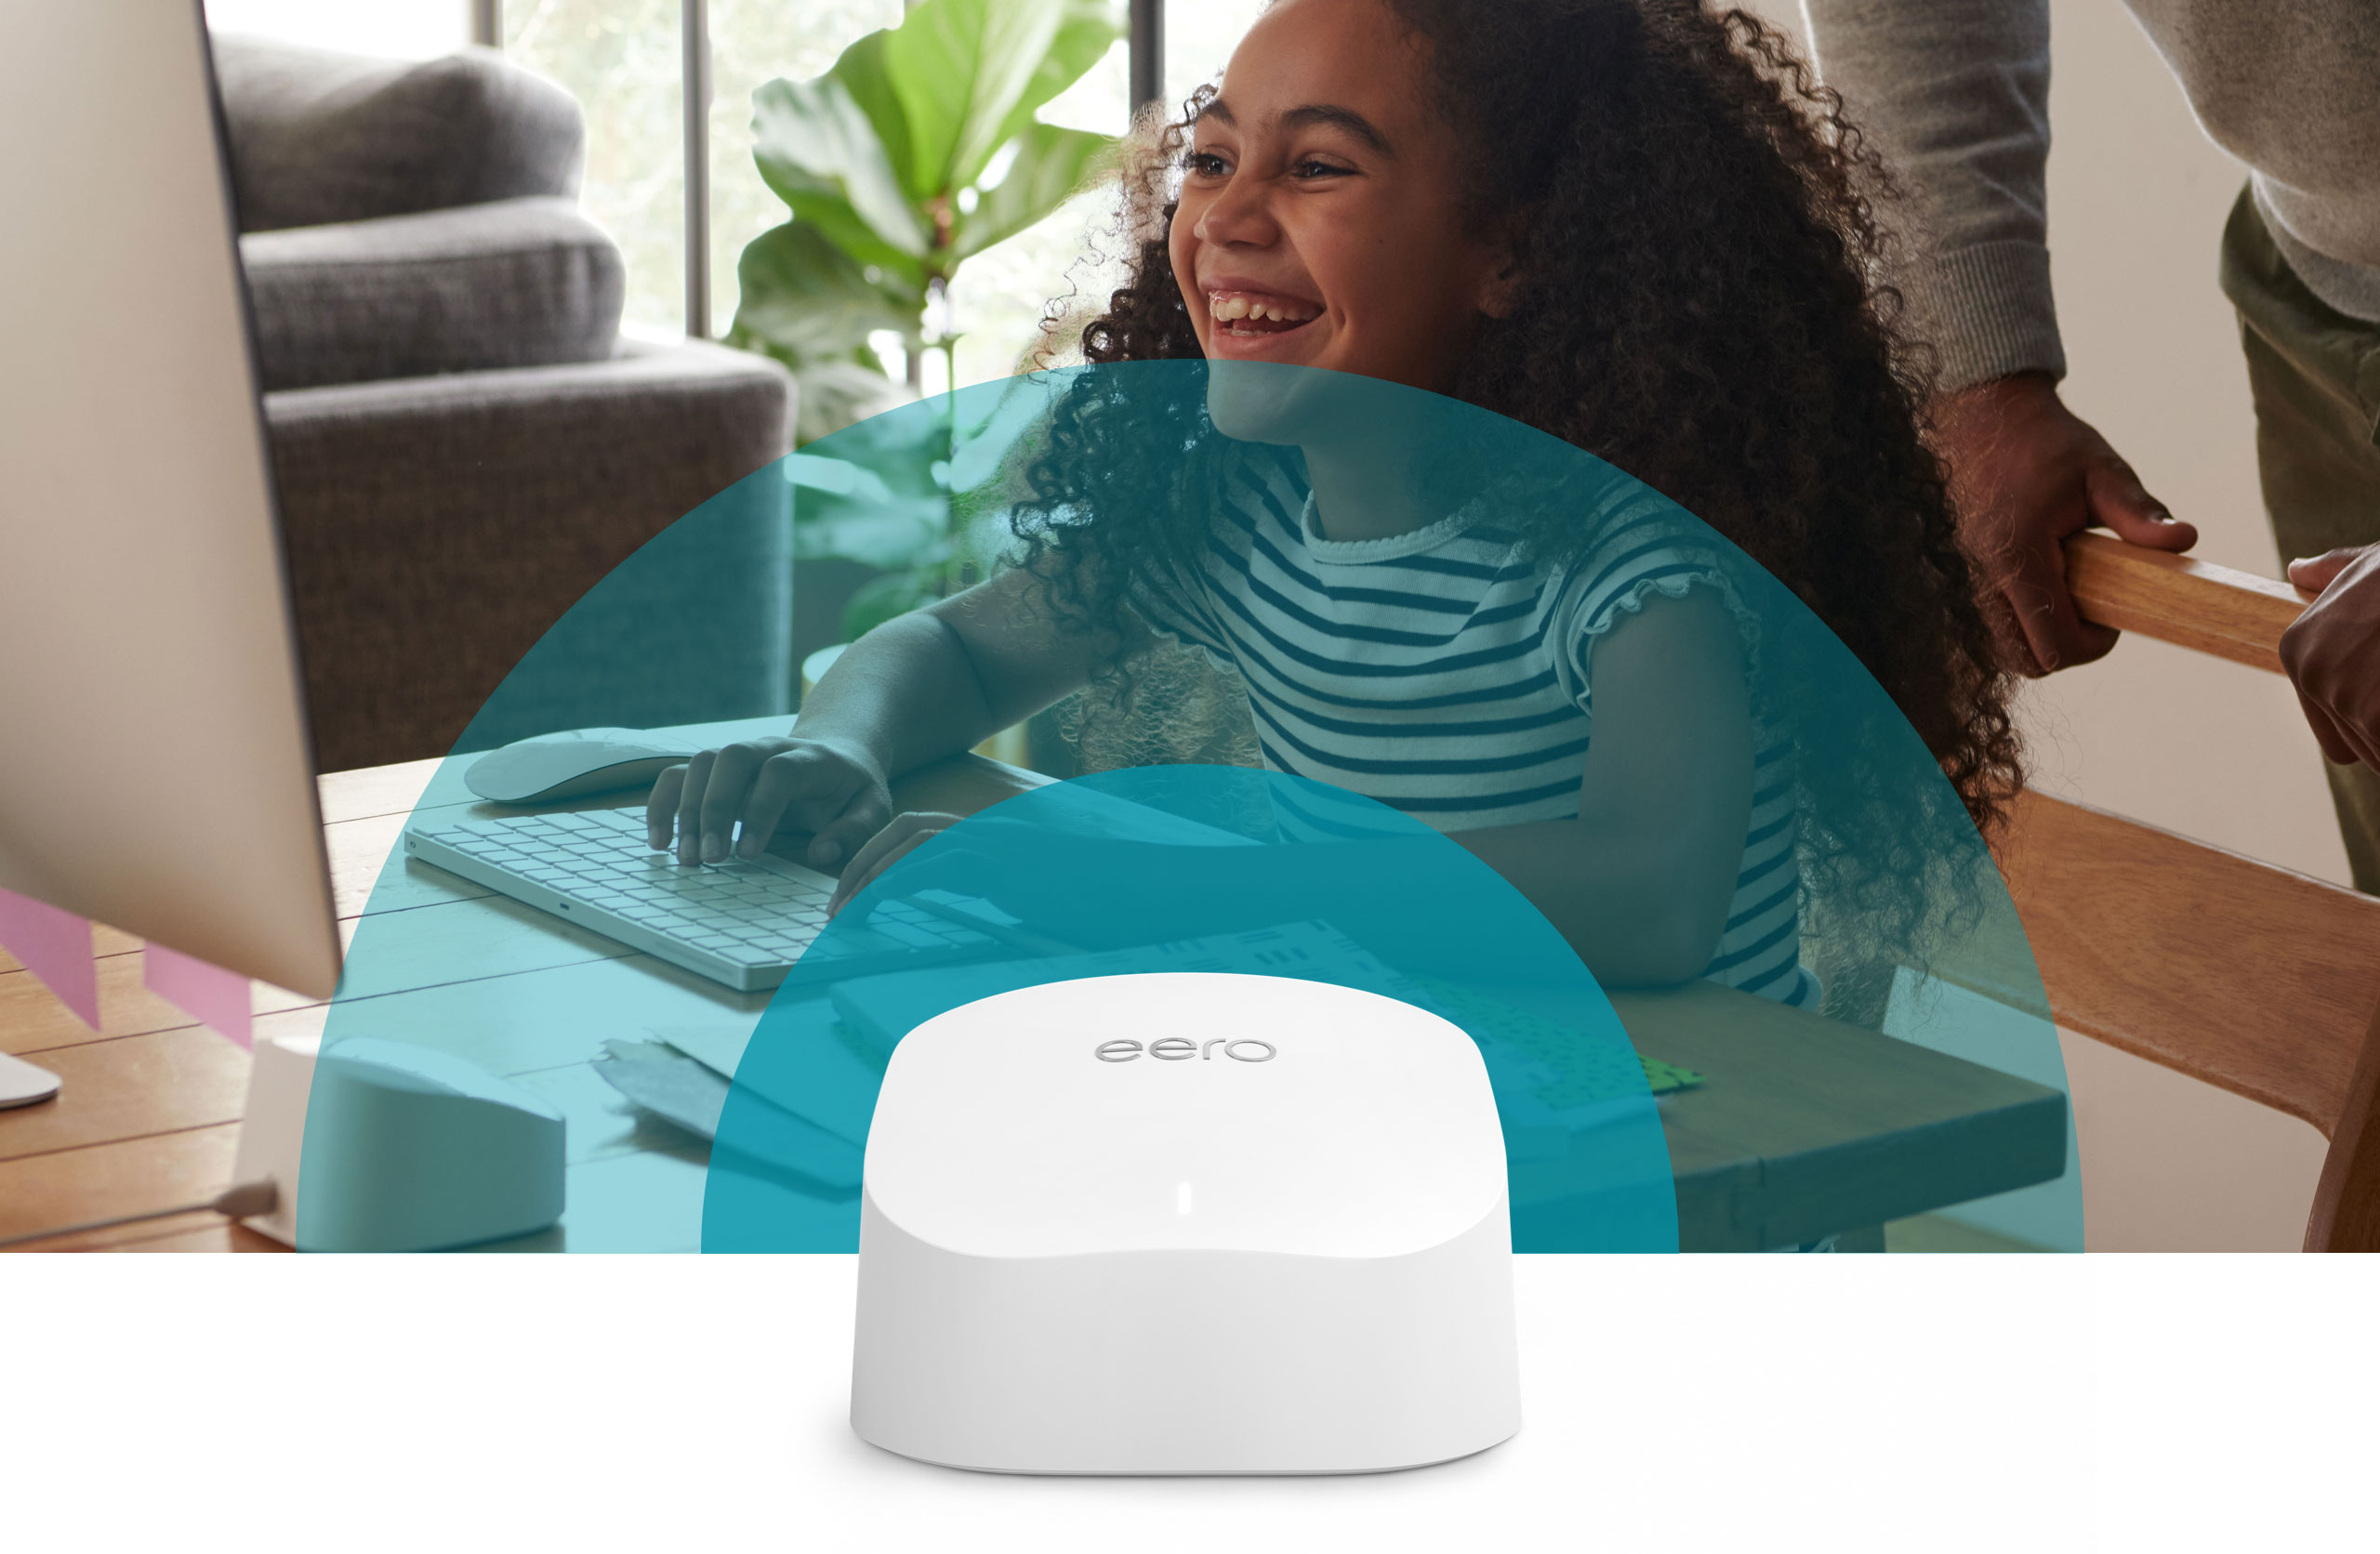 Eero at home